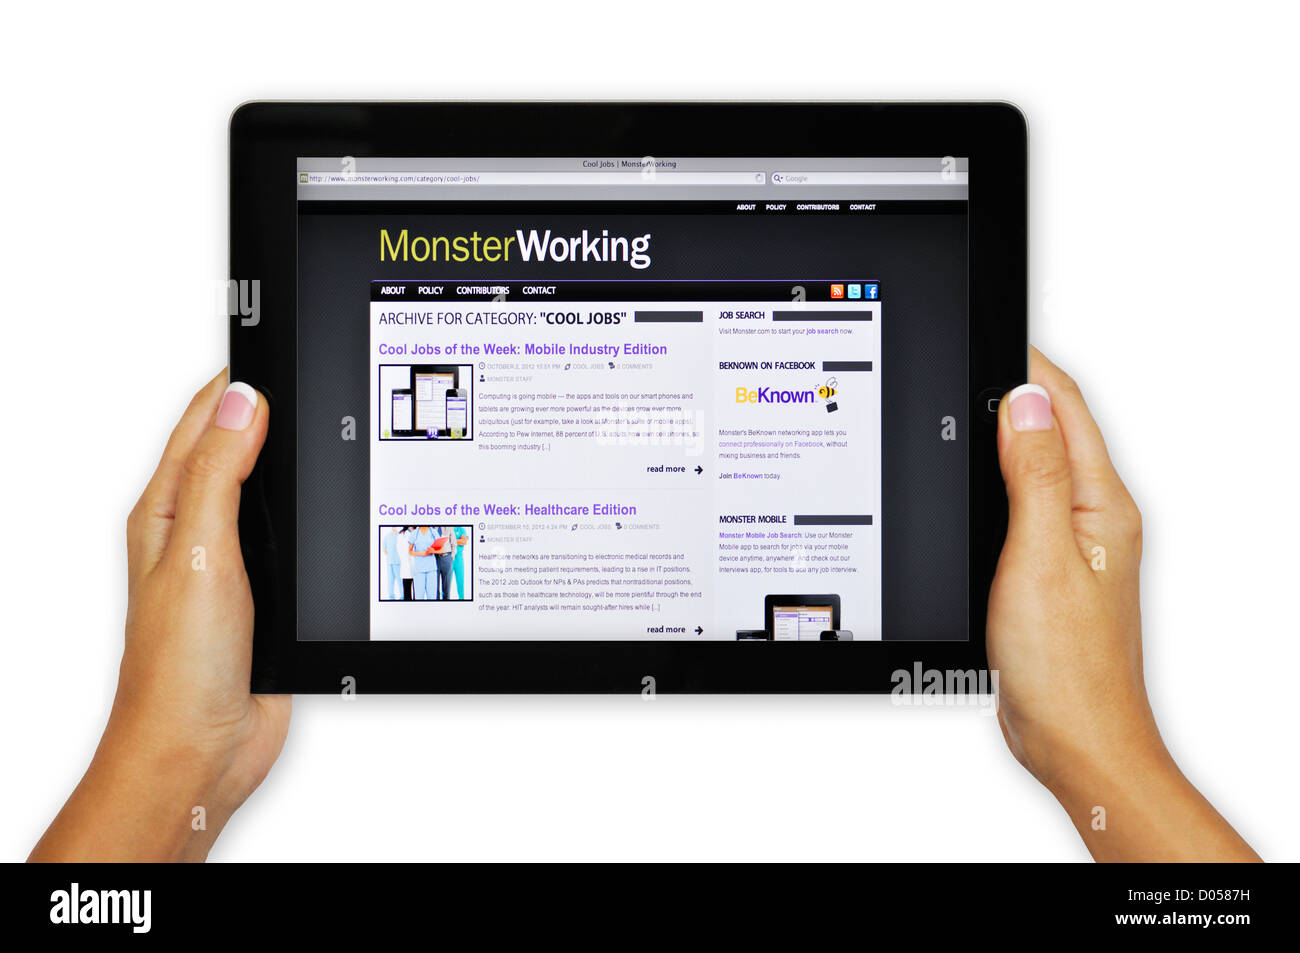 ipad screen showing monster com website job search engine stock stock photo ipad screen showing monster com website job search engine